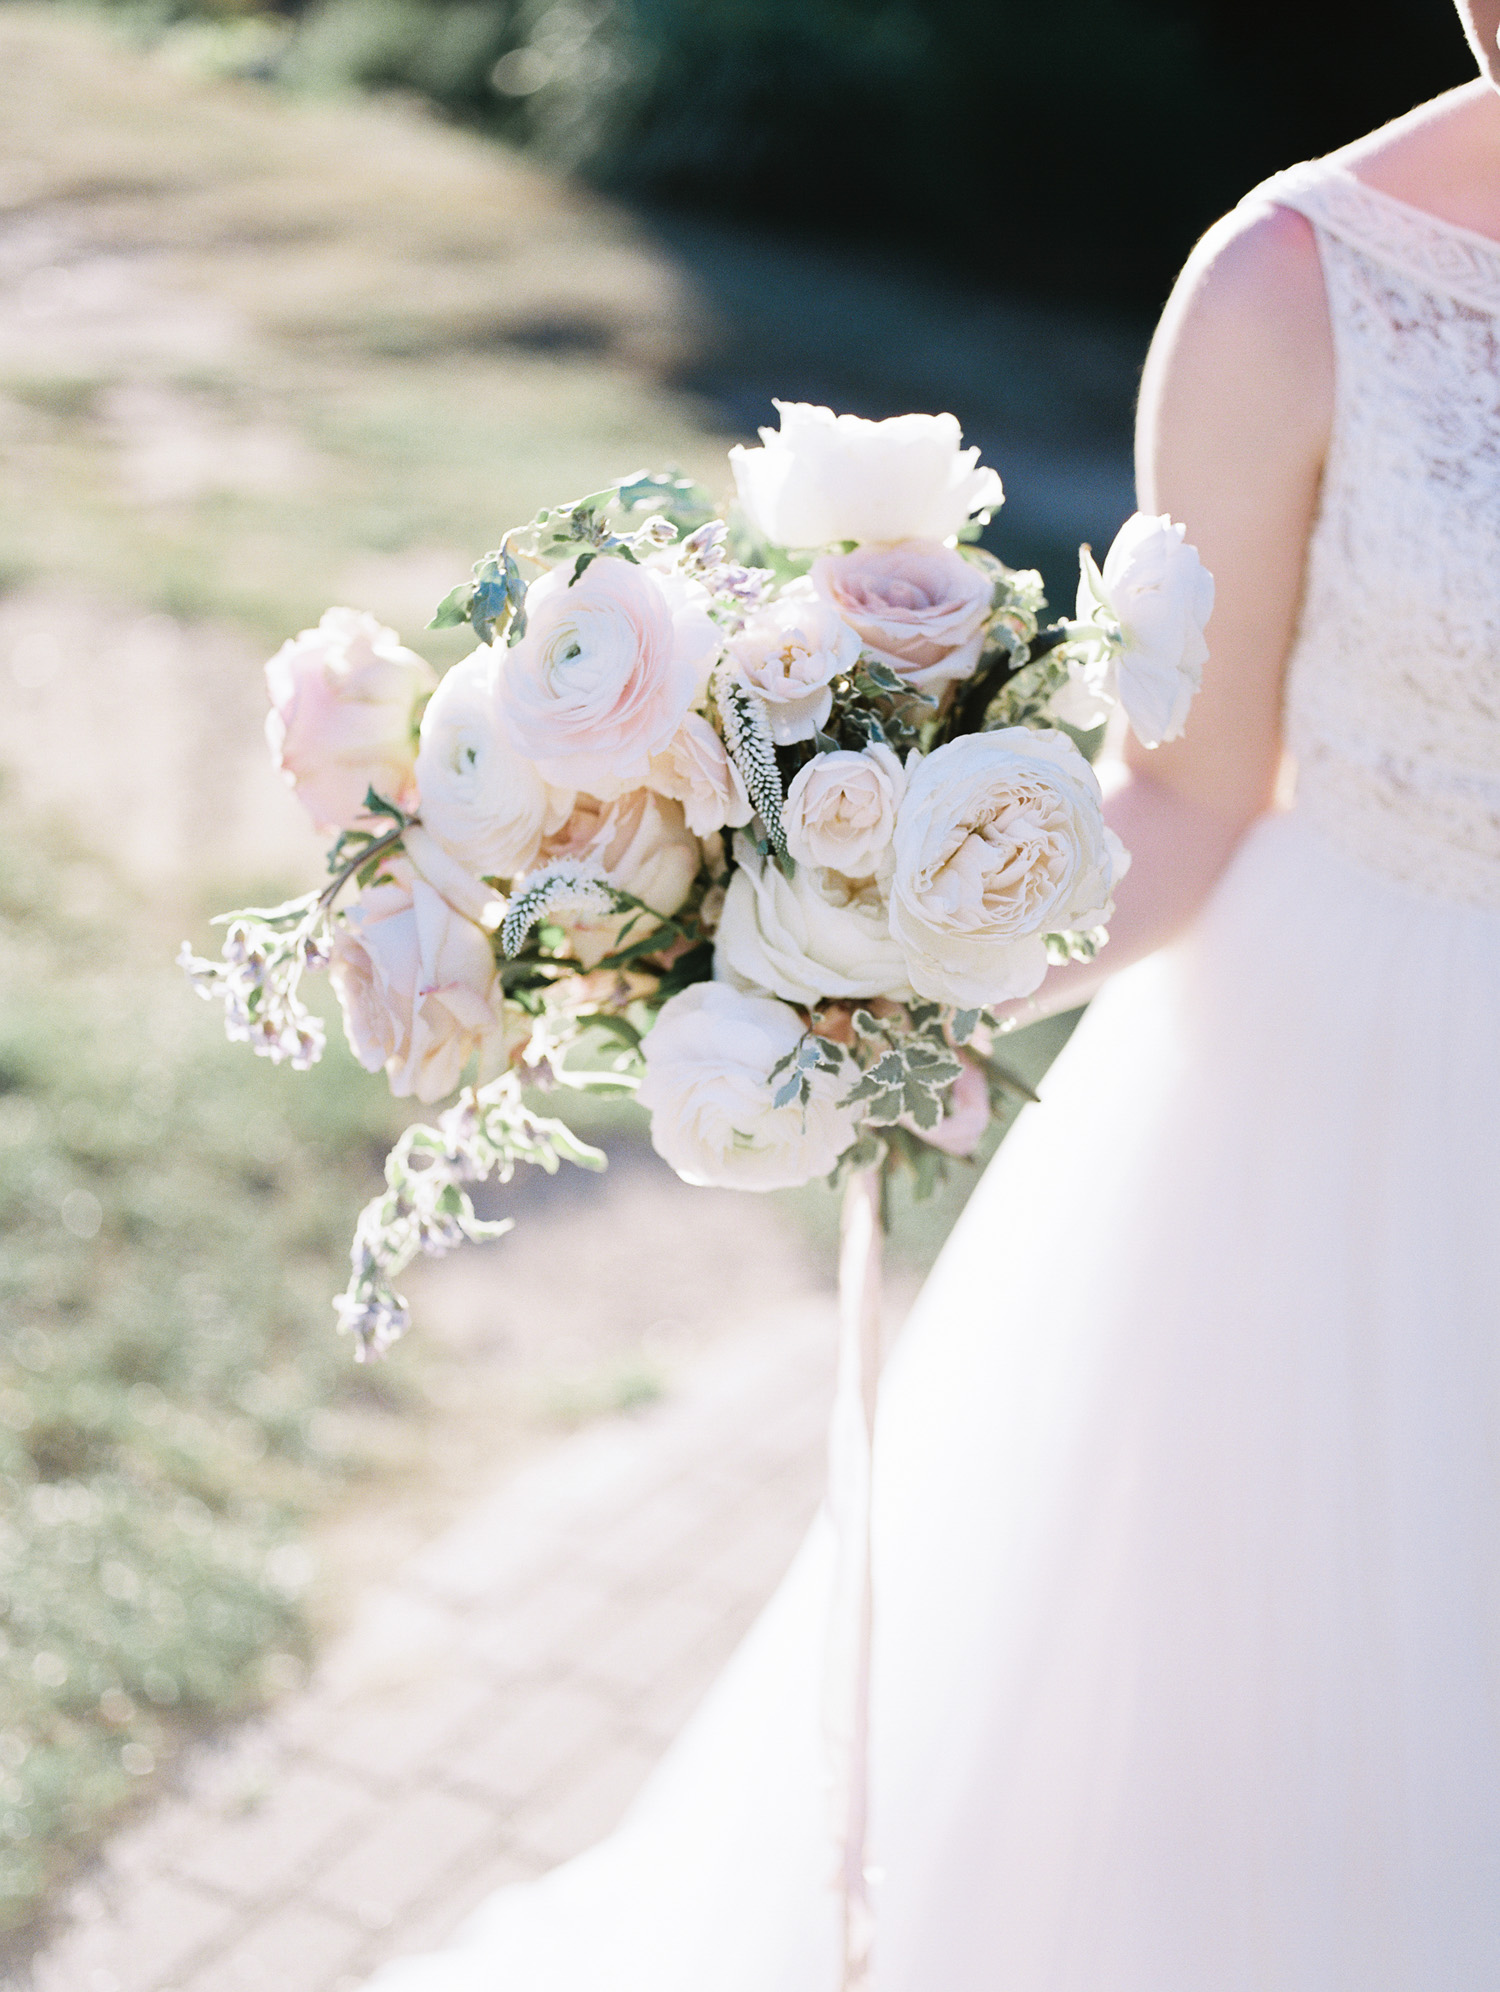 A lush wedding bouquet with white and blush ranunculus and garden roses in golden hour light by Ann Arbor film wedding photographer Christina Harrison